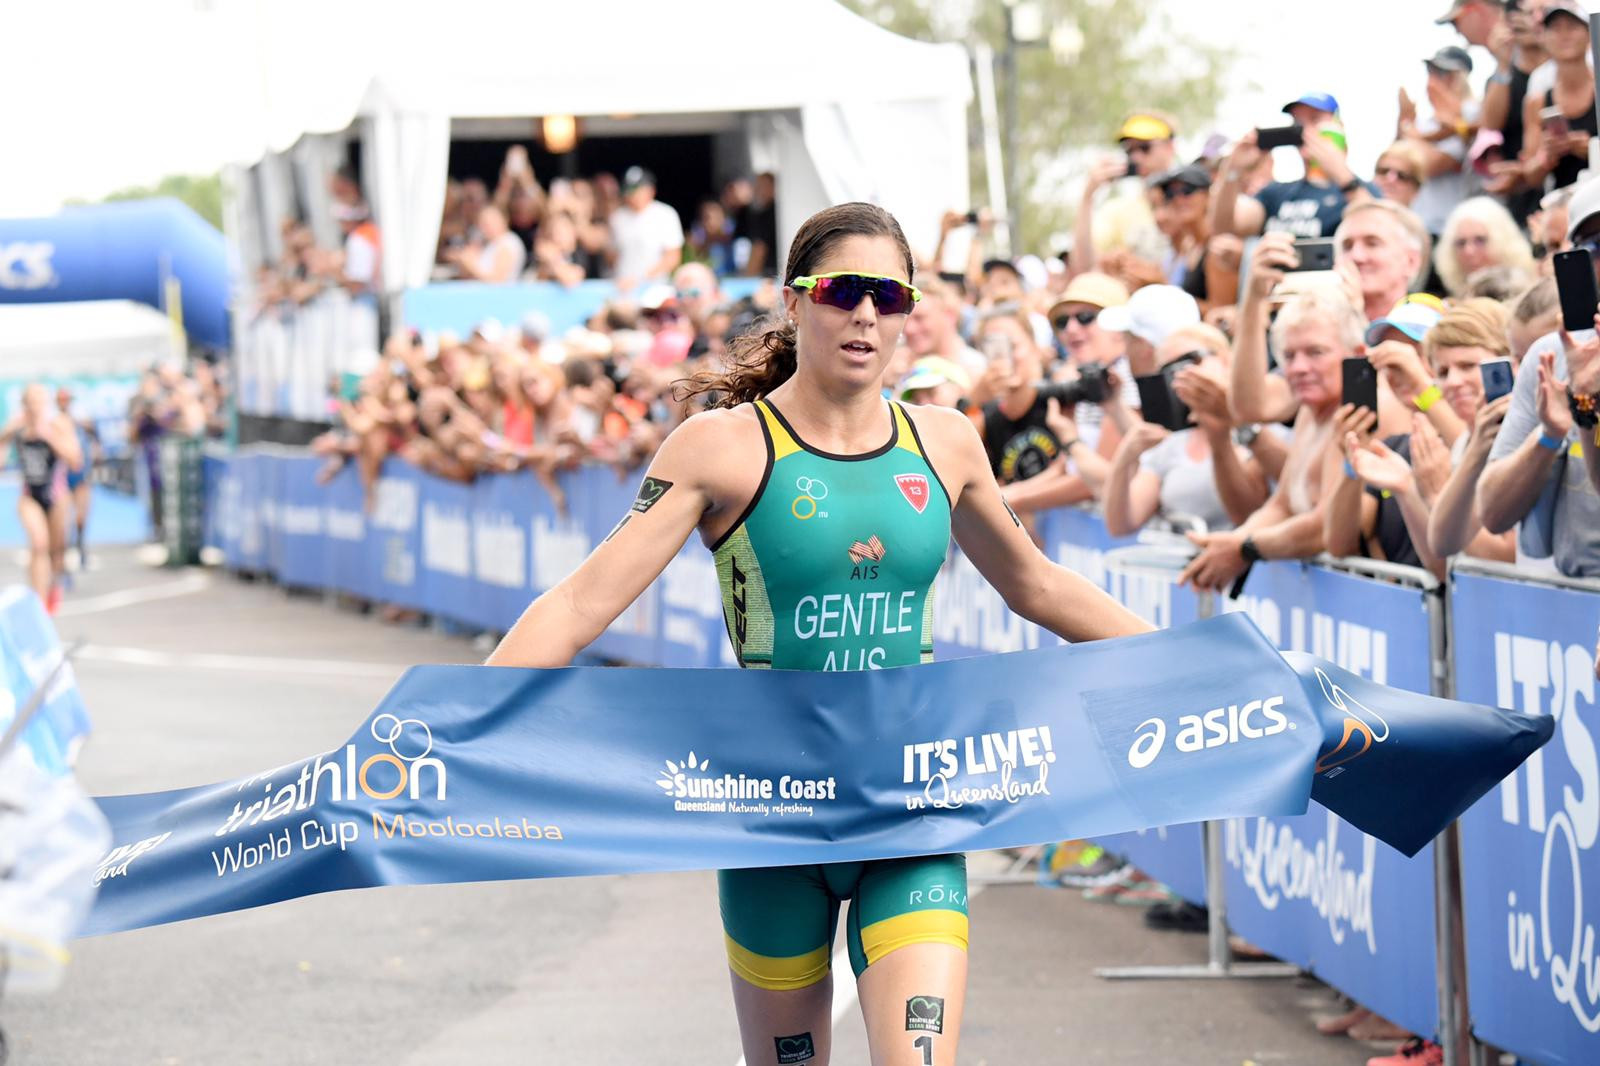 Gentle golden again on home soil as she takes ITU World Cup title in Queensland's Mooloolaba